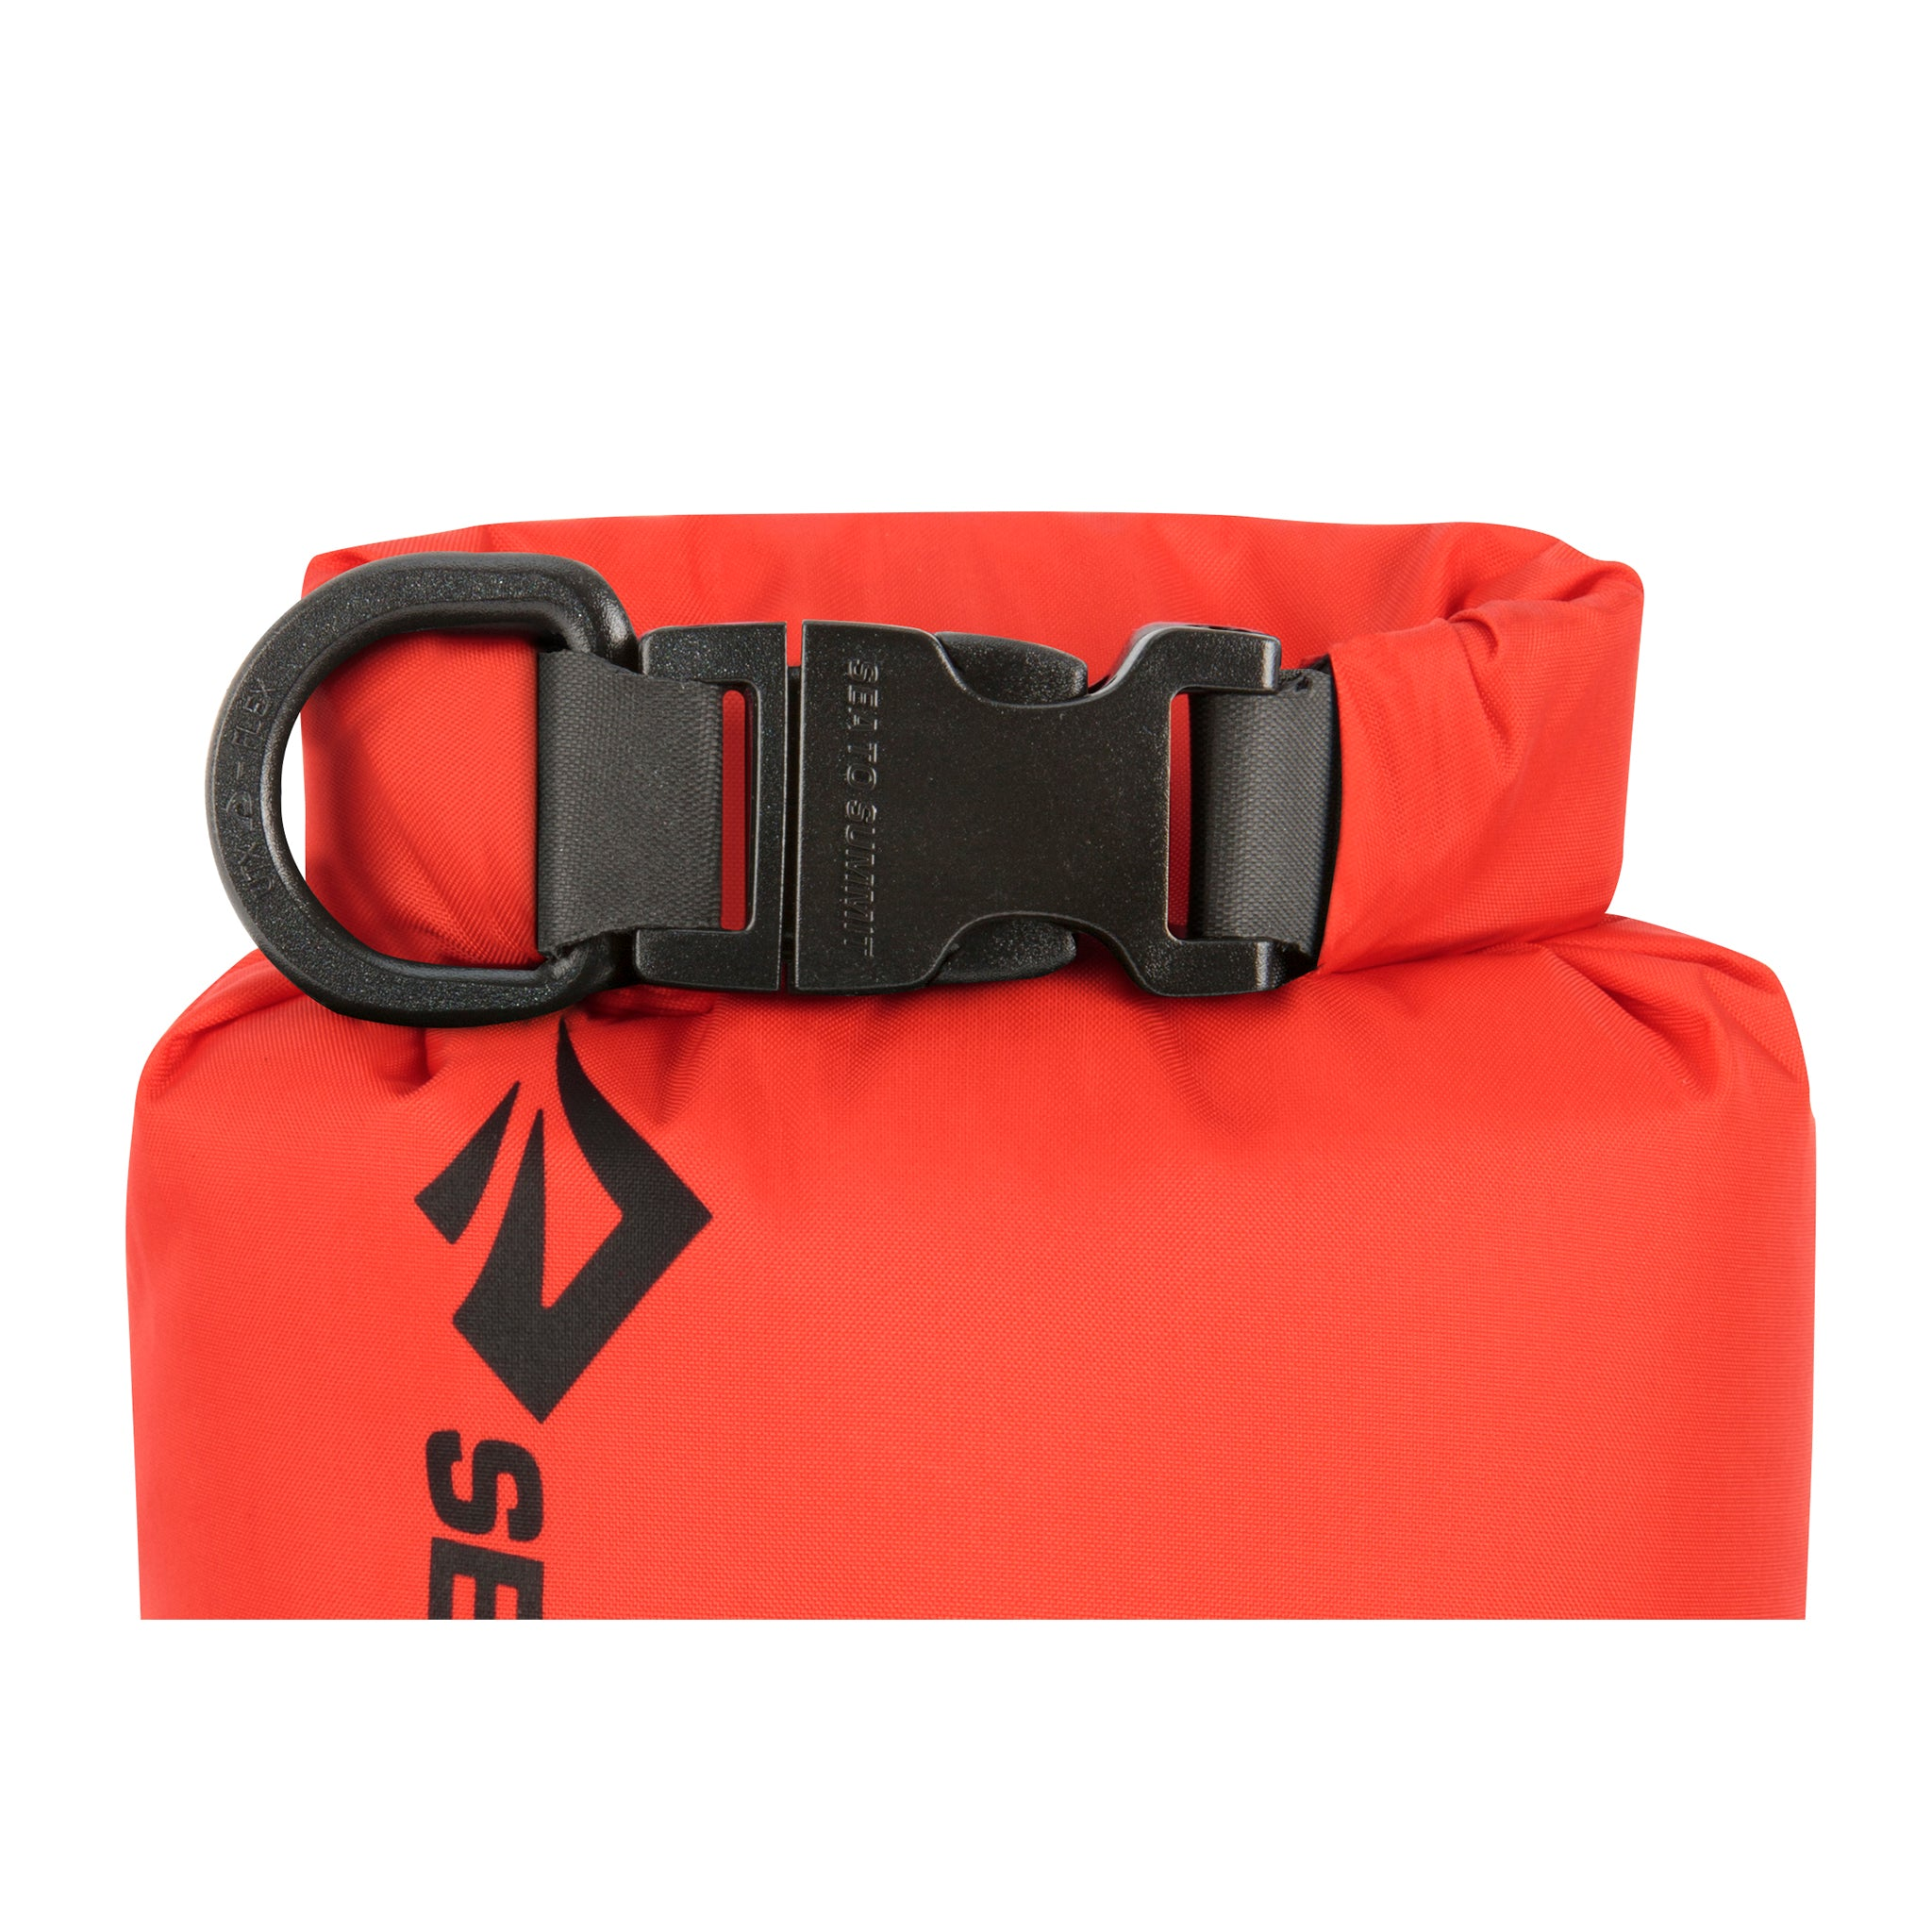 Lightweight Waterproof Dry Bag _ seam sealed